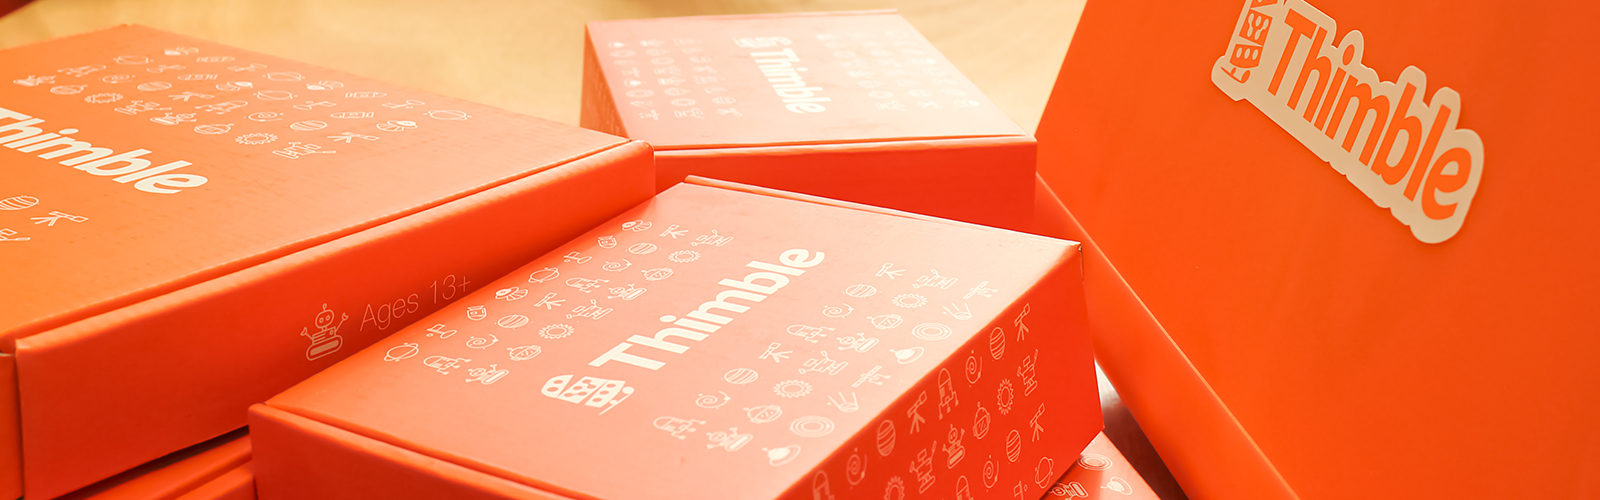 Thimble.io's home-delivered toy kits make electronics more accessible, inspiring, and fun.